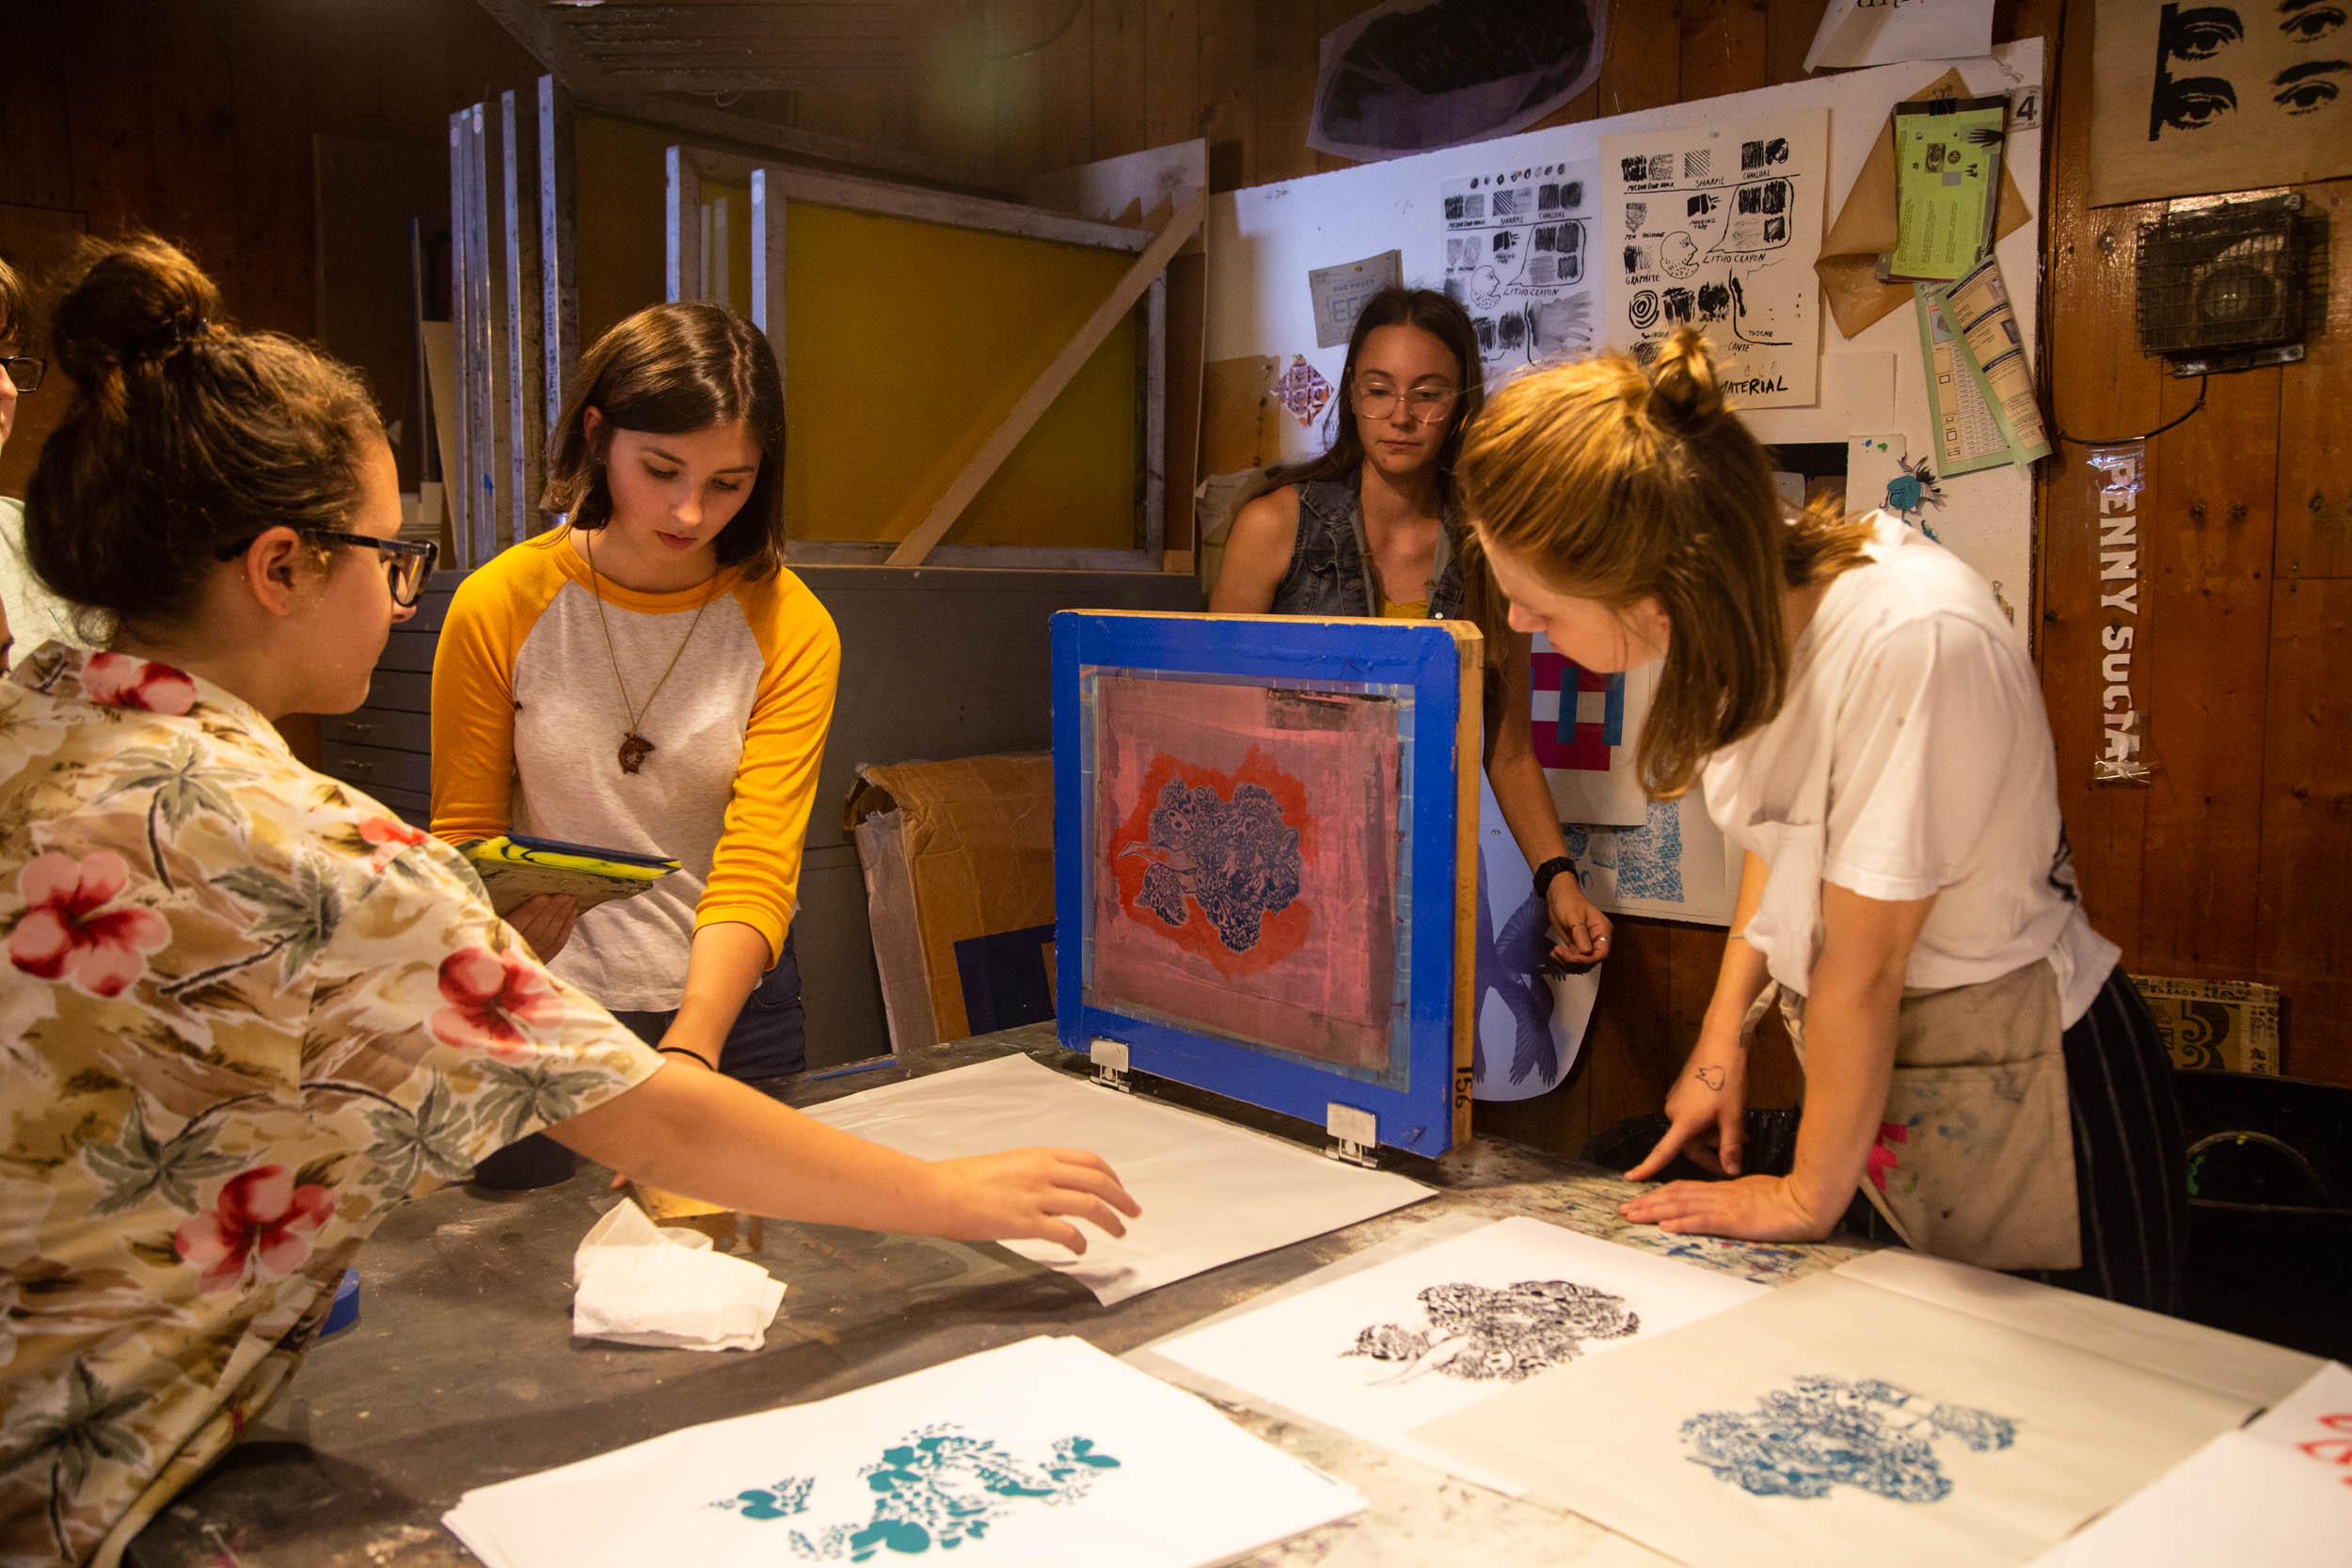 wassaic-project-education-teen-screenprinting-camp-2018-08-16-14-05-29.jpg